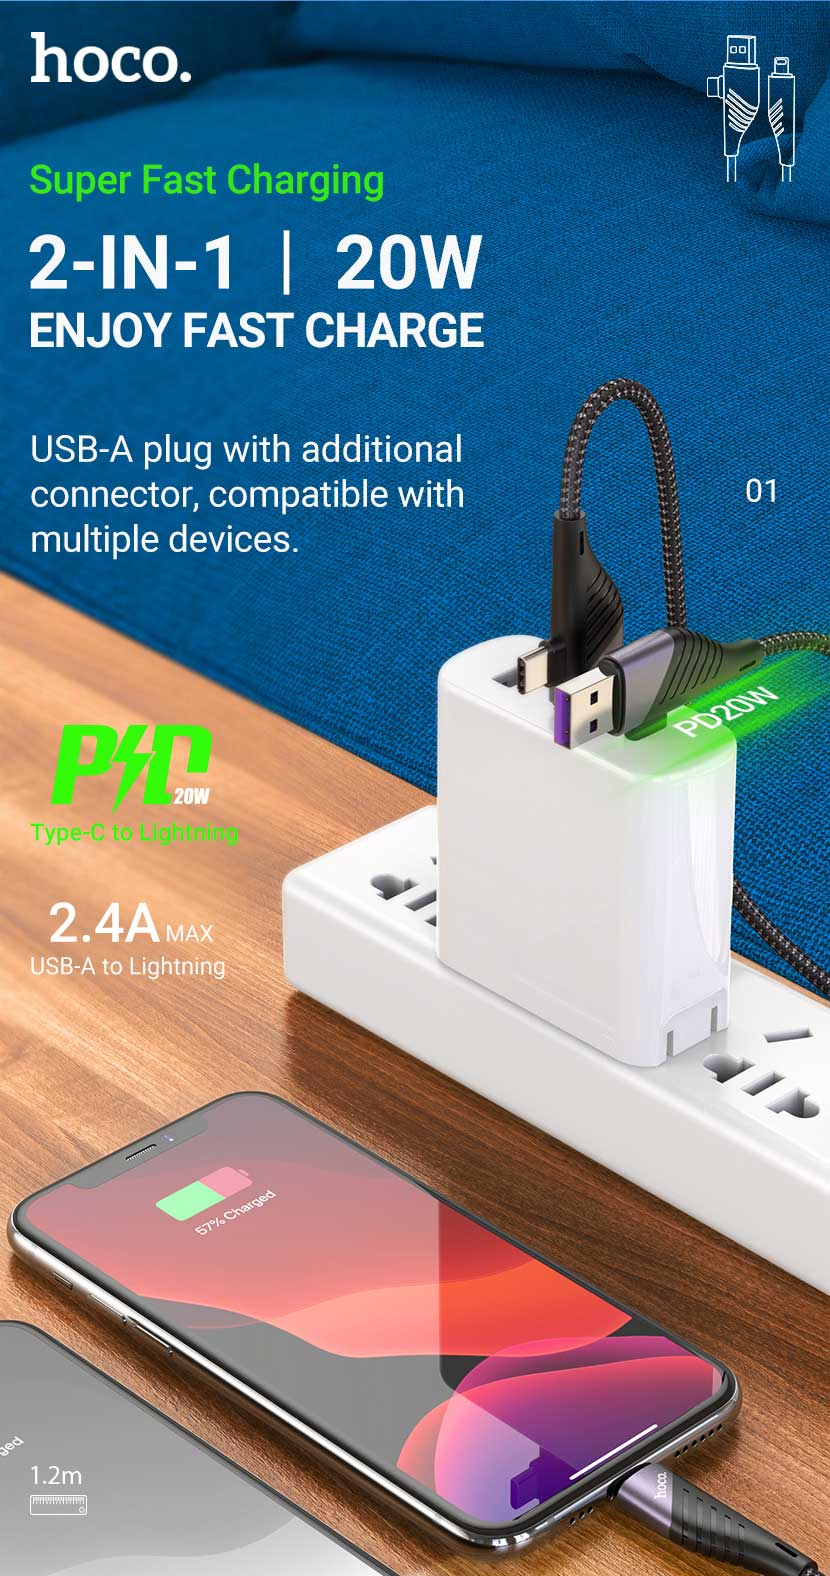 hoco news u95 freeway pd charging data cable 2in1 usb type c to lightning en